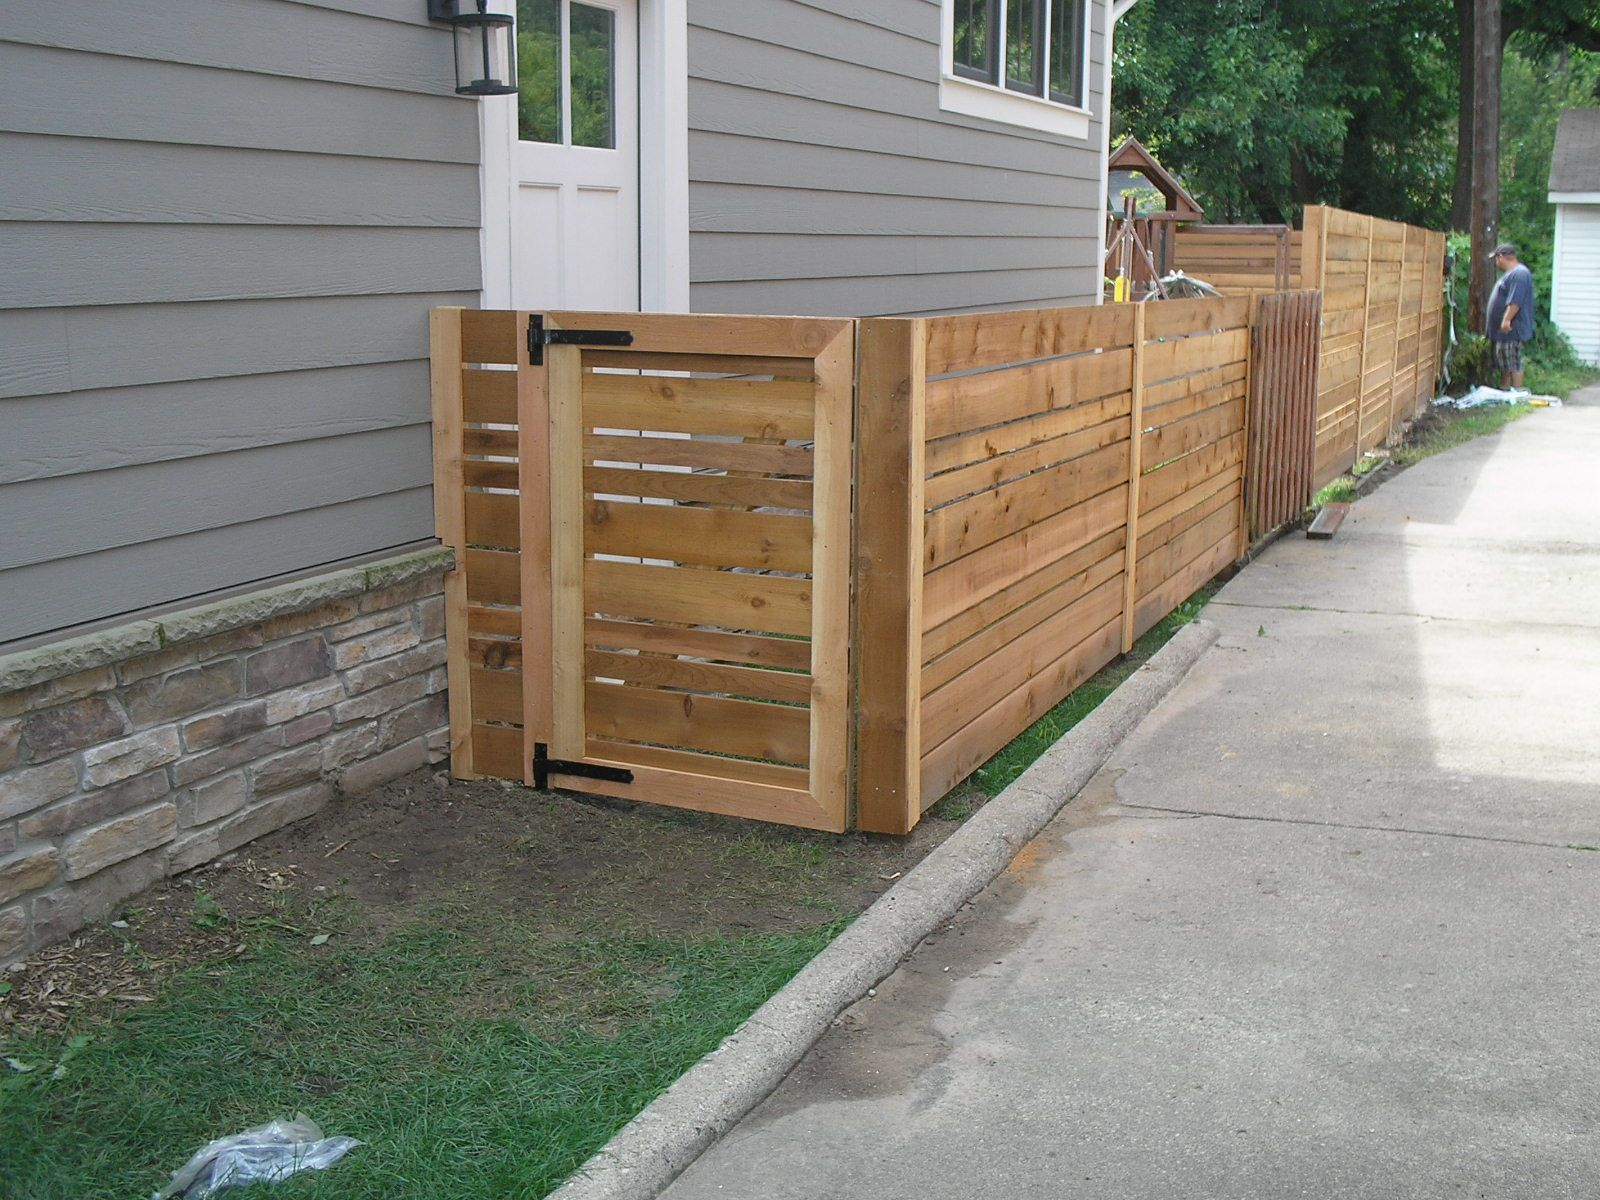 4 And 6 Foot Horizontal Spaced With Gate Wood Fence Gates Wood Fence Cheap Fence